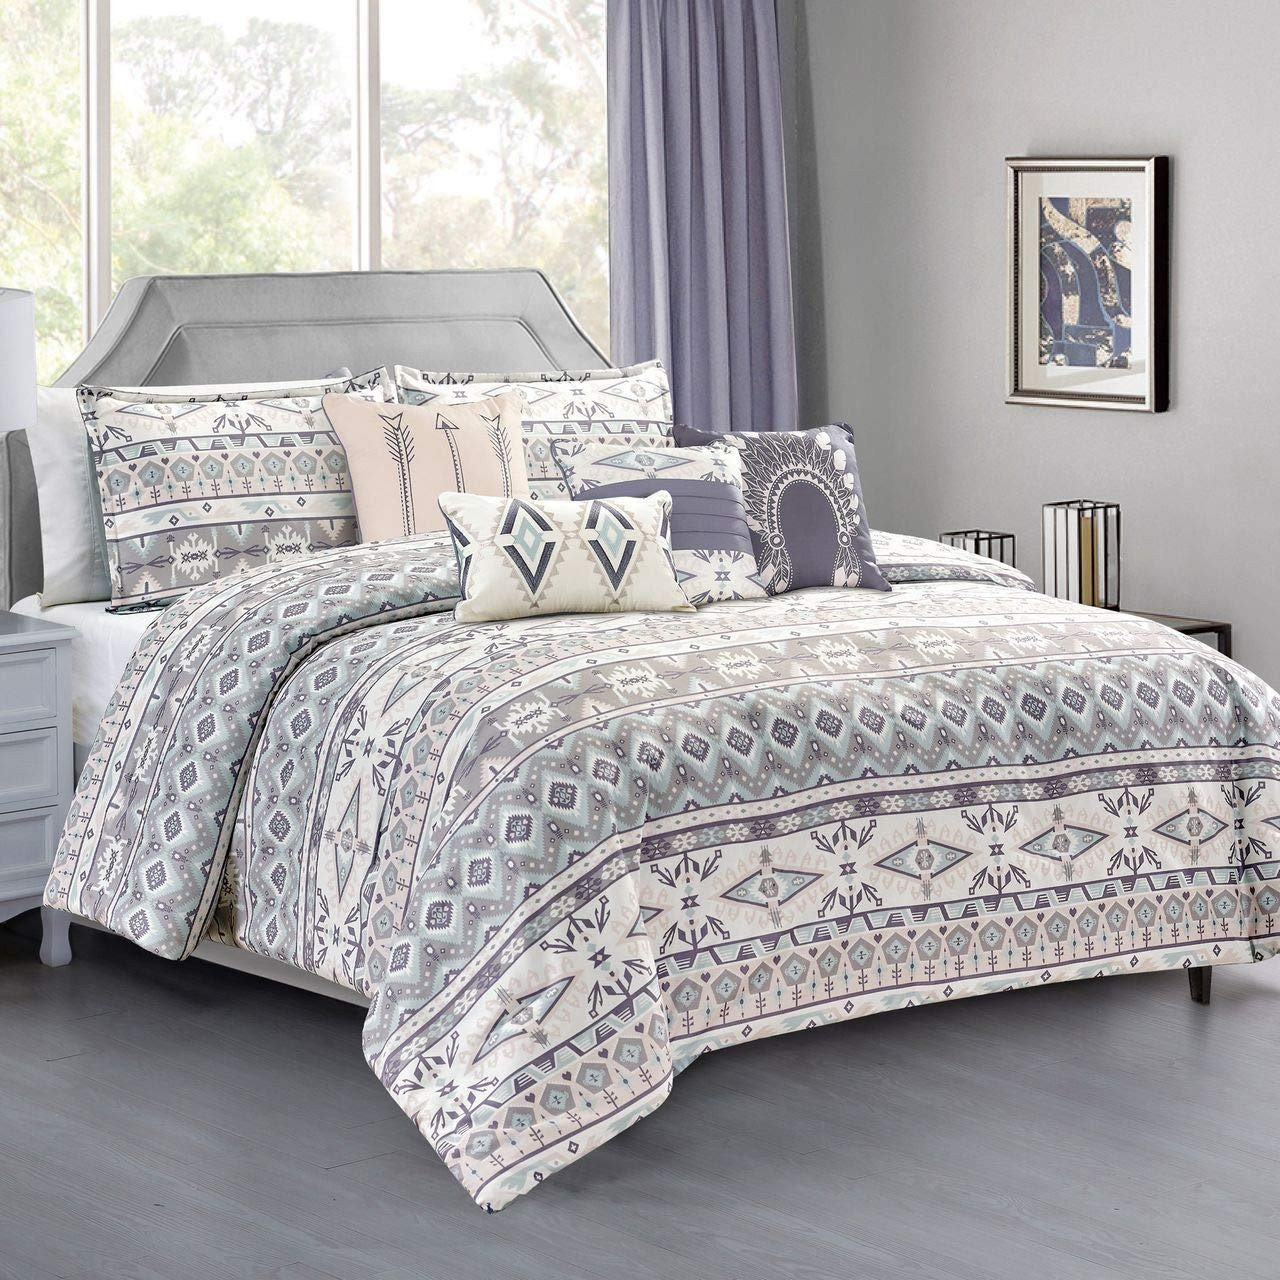 4 Piece Queen Bedroom Set Inspirational Kinglinen 7 Piece Yvonne forter Set Queen